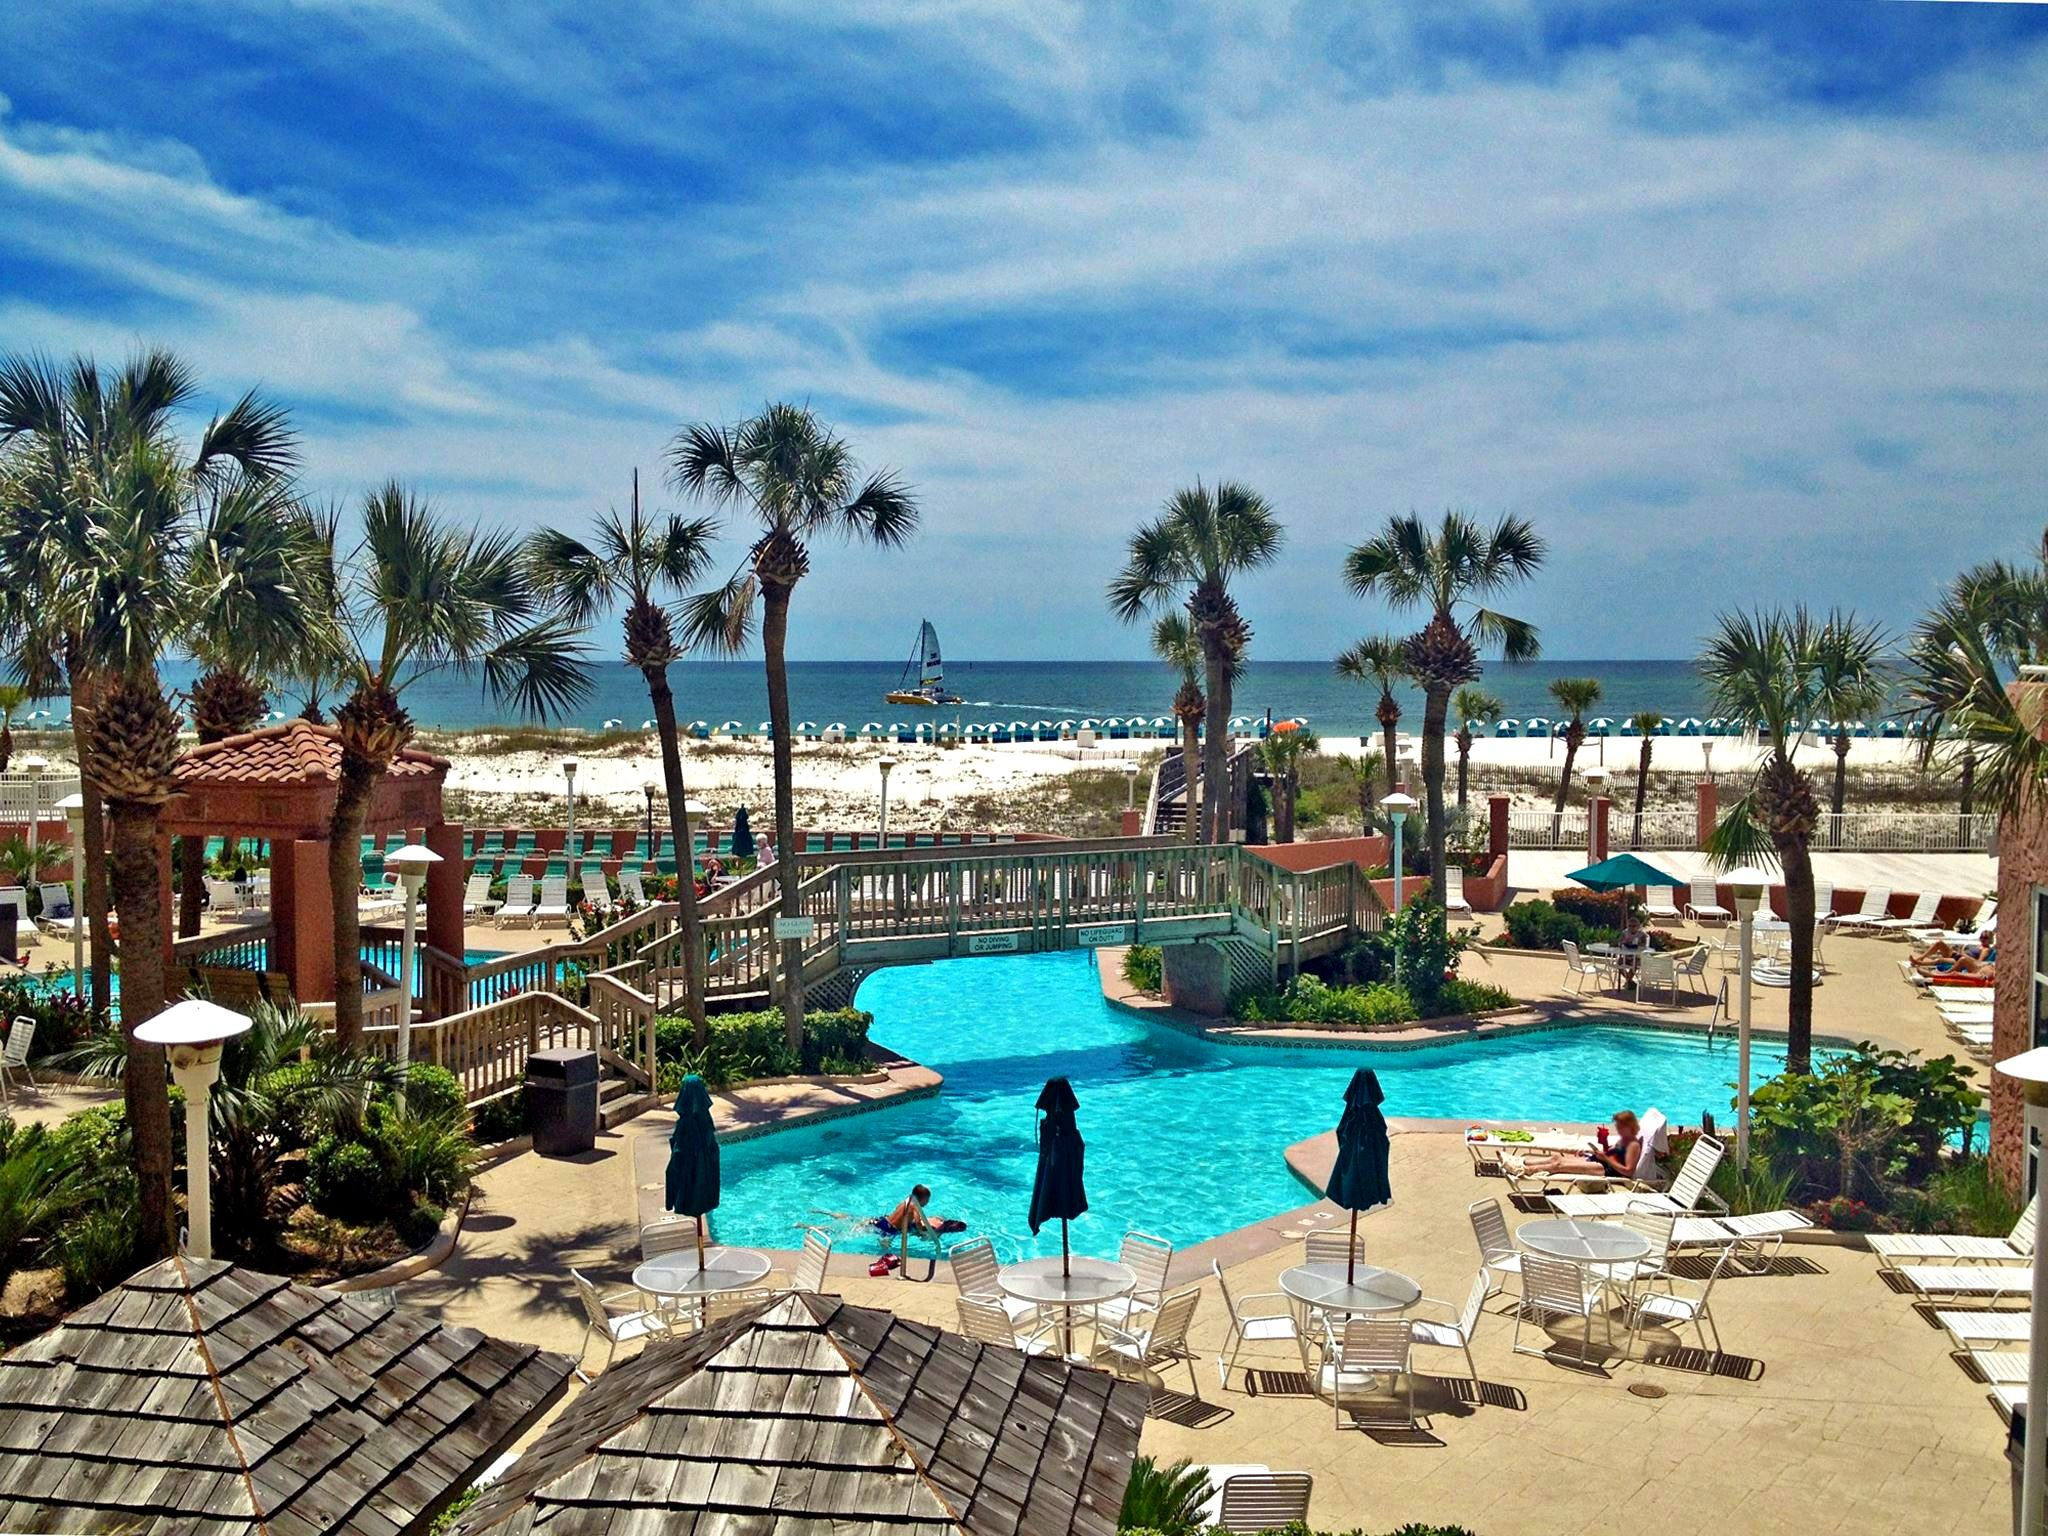 A perfect day at the Perdido Beach Resort in Orange Beach